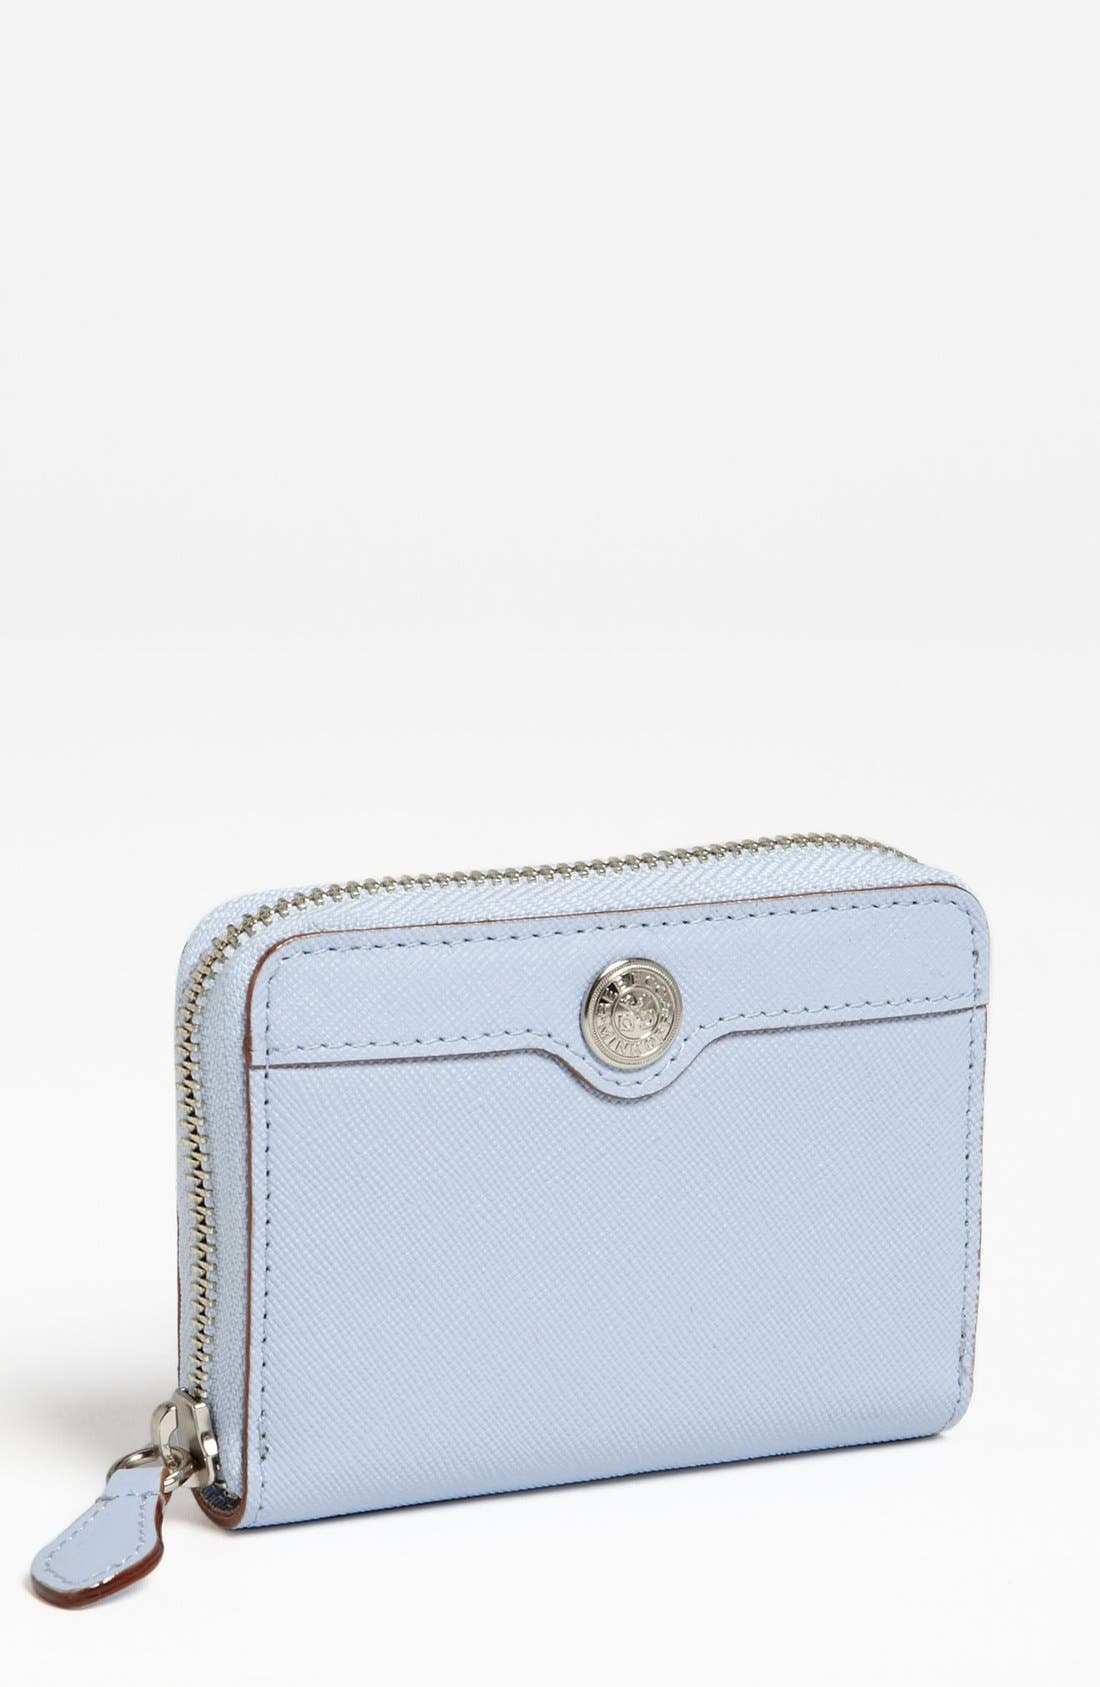 Alternate Image 1 Selected - Rebecca Minkoff 'Frannie' Leather French Wallet